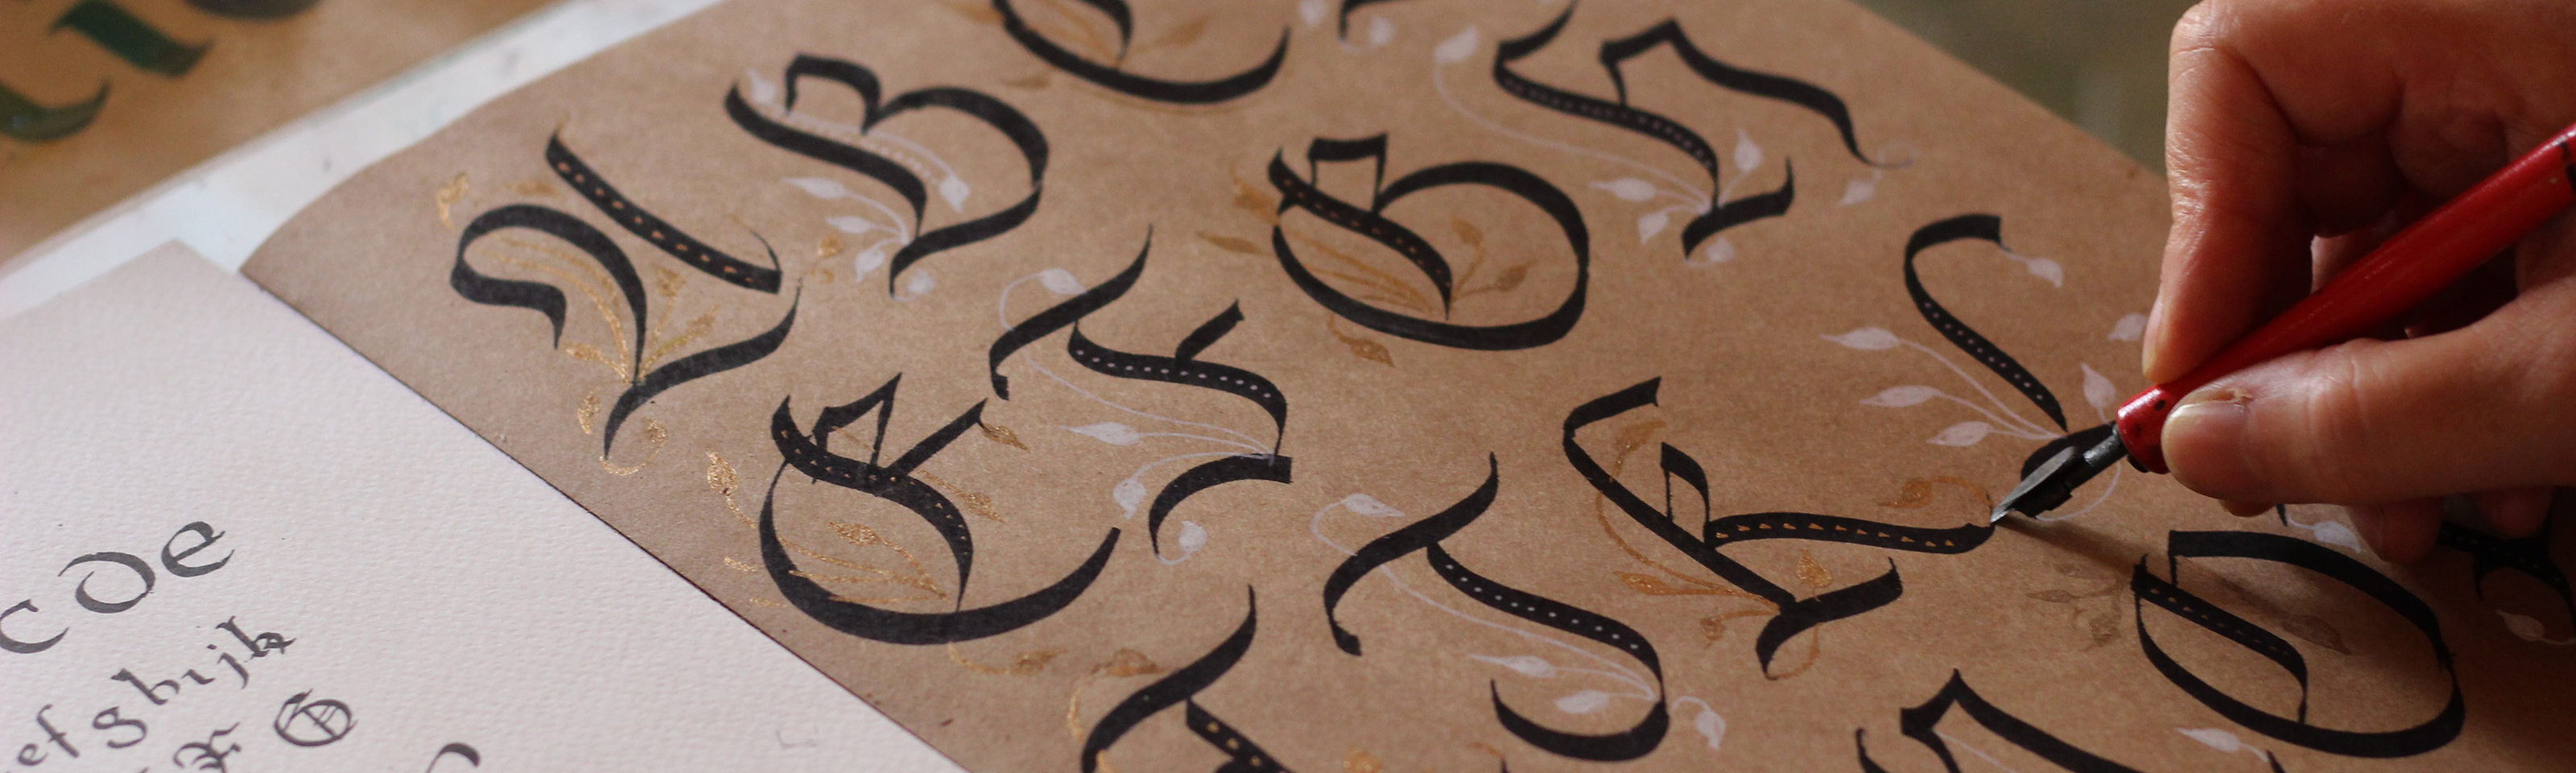 A hand draws letters in calligraphic script on paper.